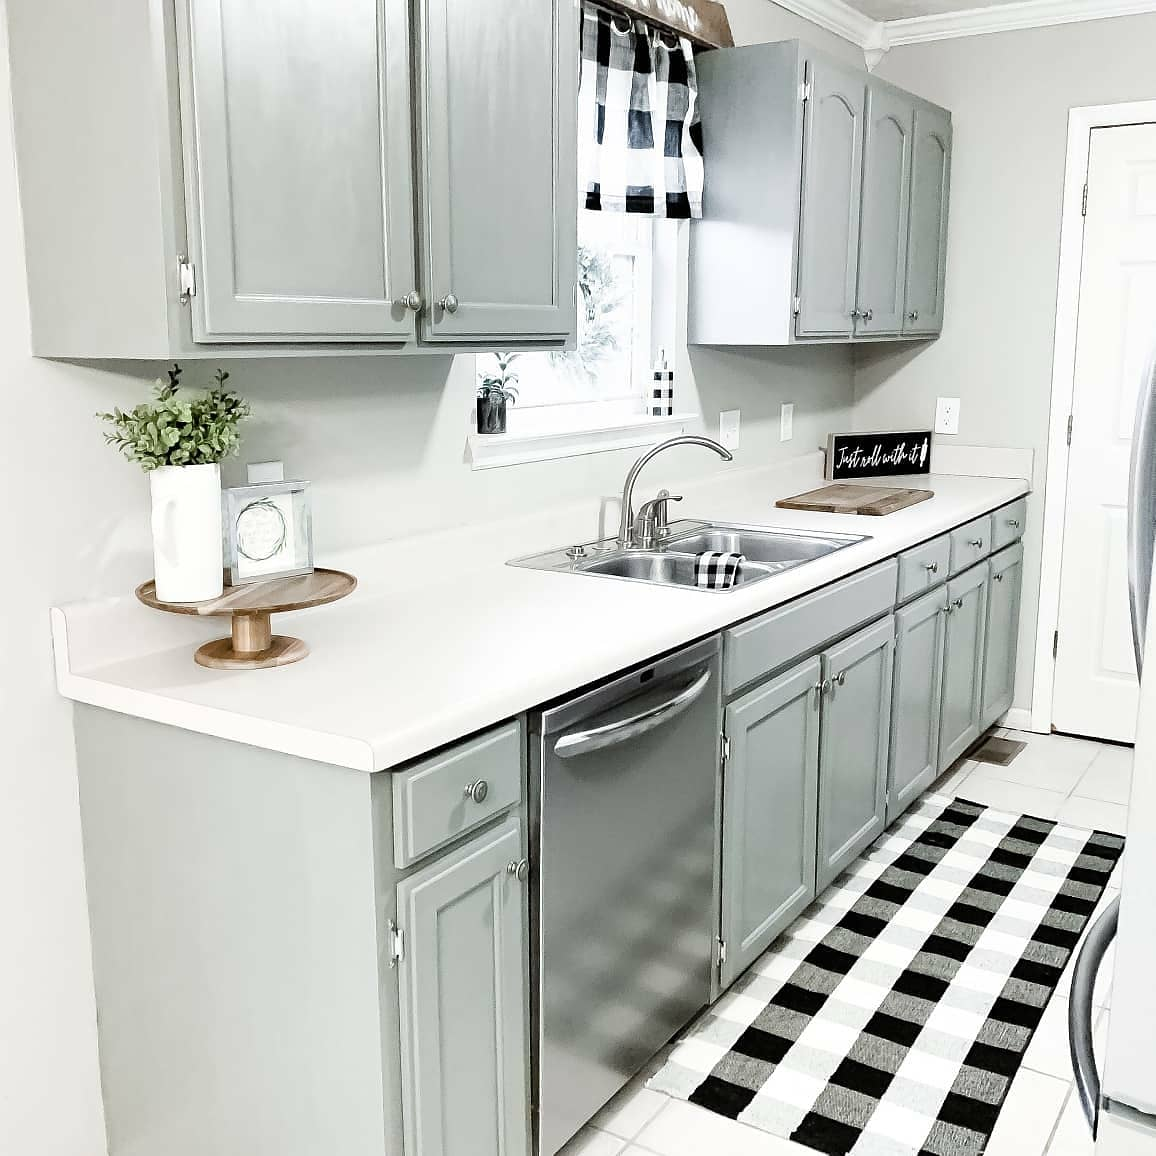 Chalk Painted Kitchen Cabinets - Shabby Paints